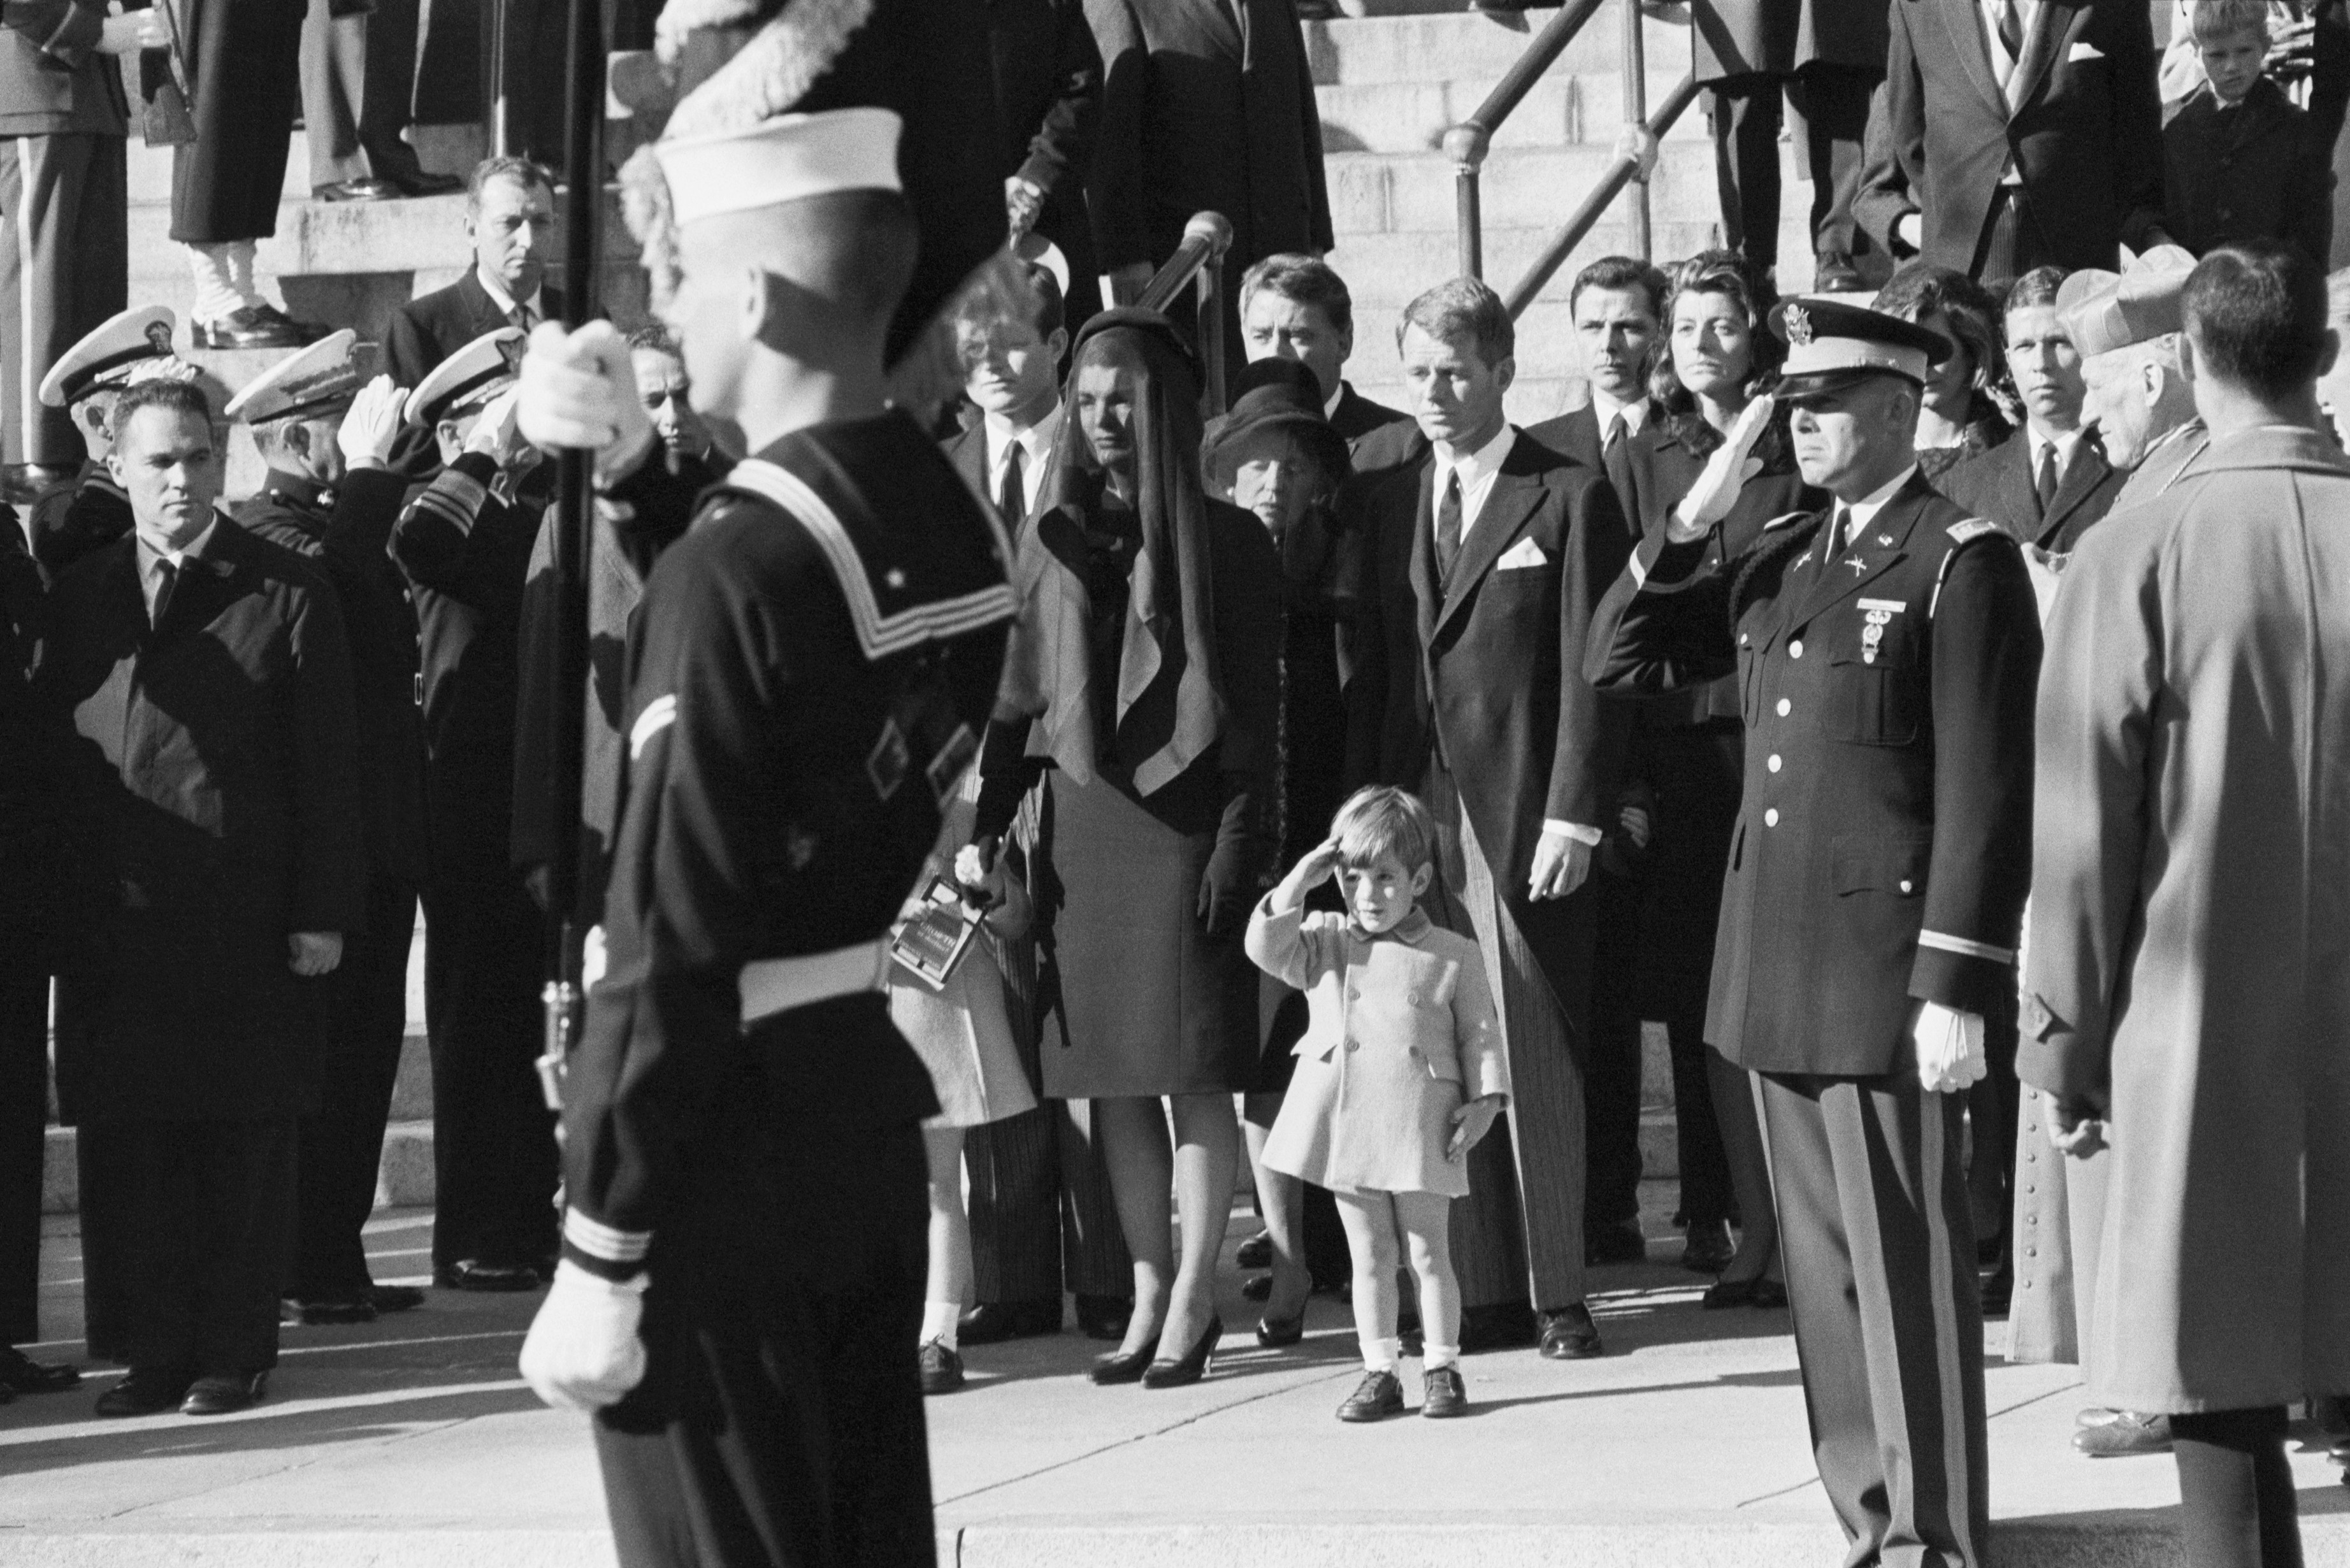 John F. Kennedy Jr., 3, salutes as the casket of his father, the late President John F. Kennedy, is carried from St. Matthew's Cathedral in Washington, D.C., on Nov. 25, 1963.